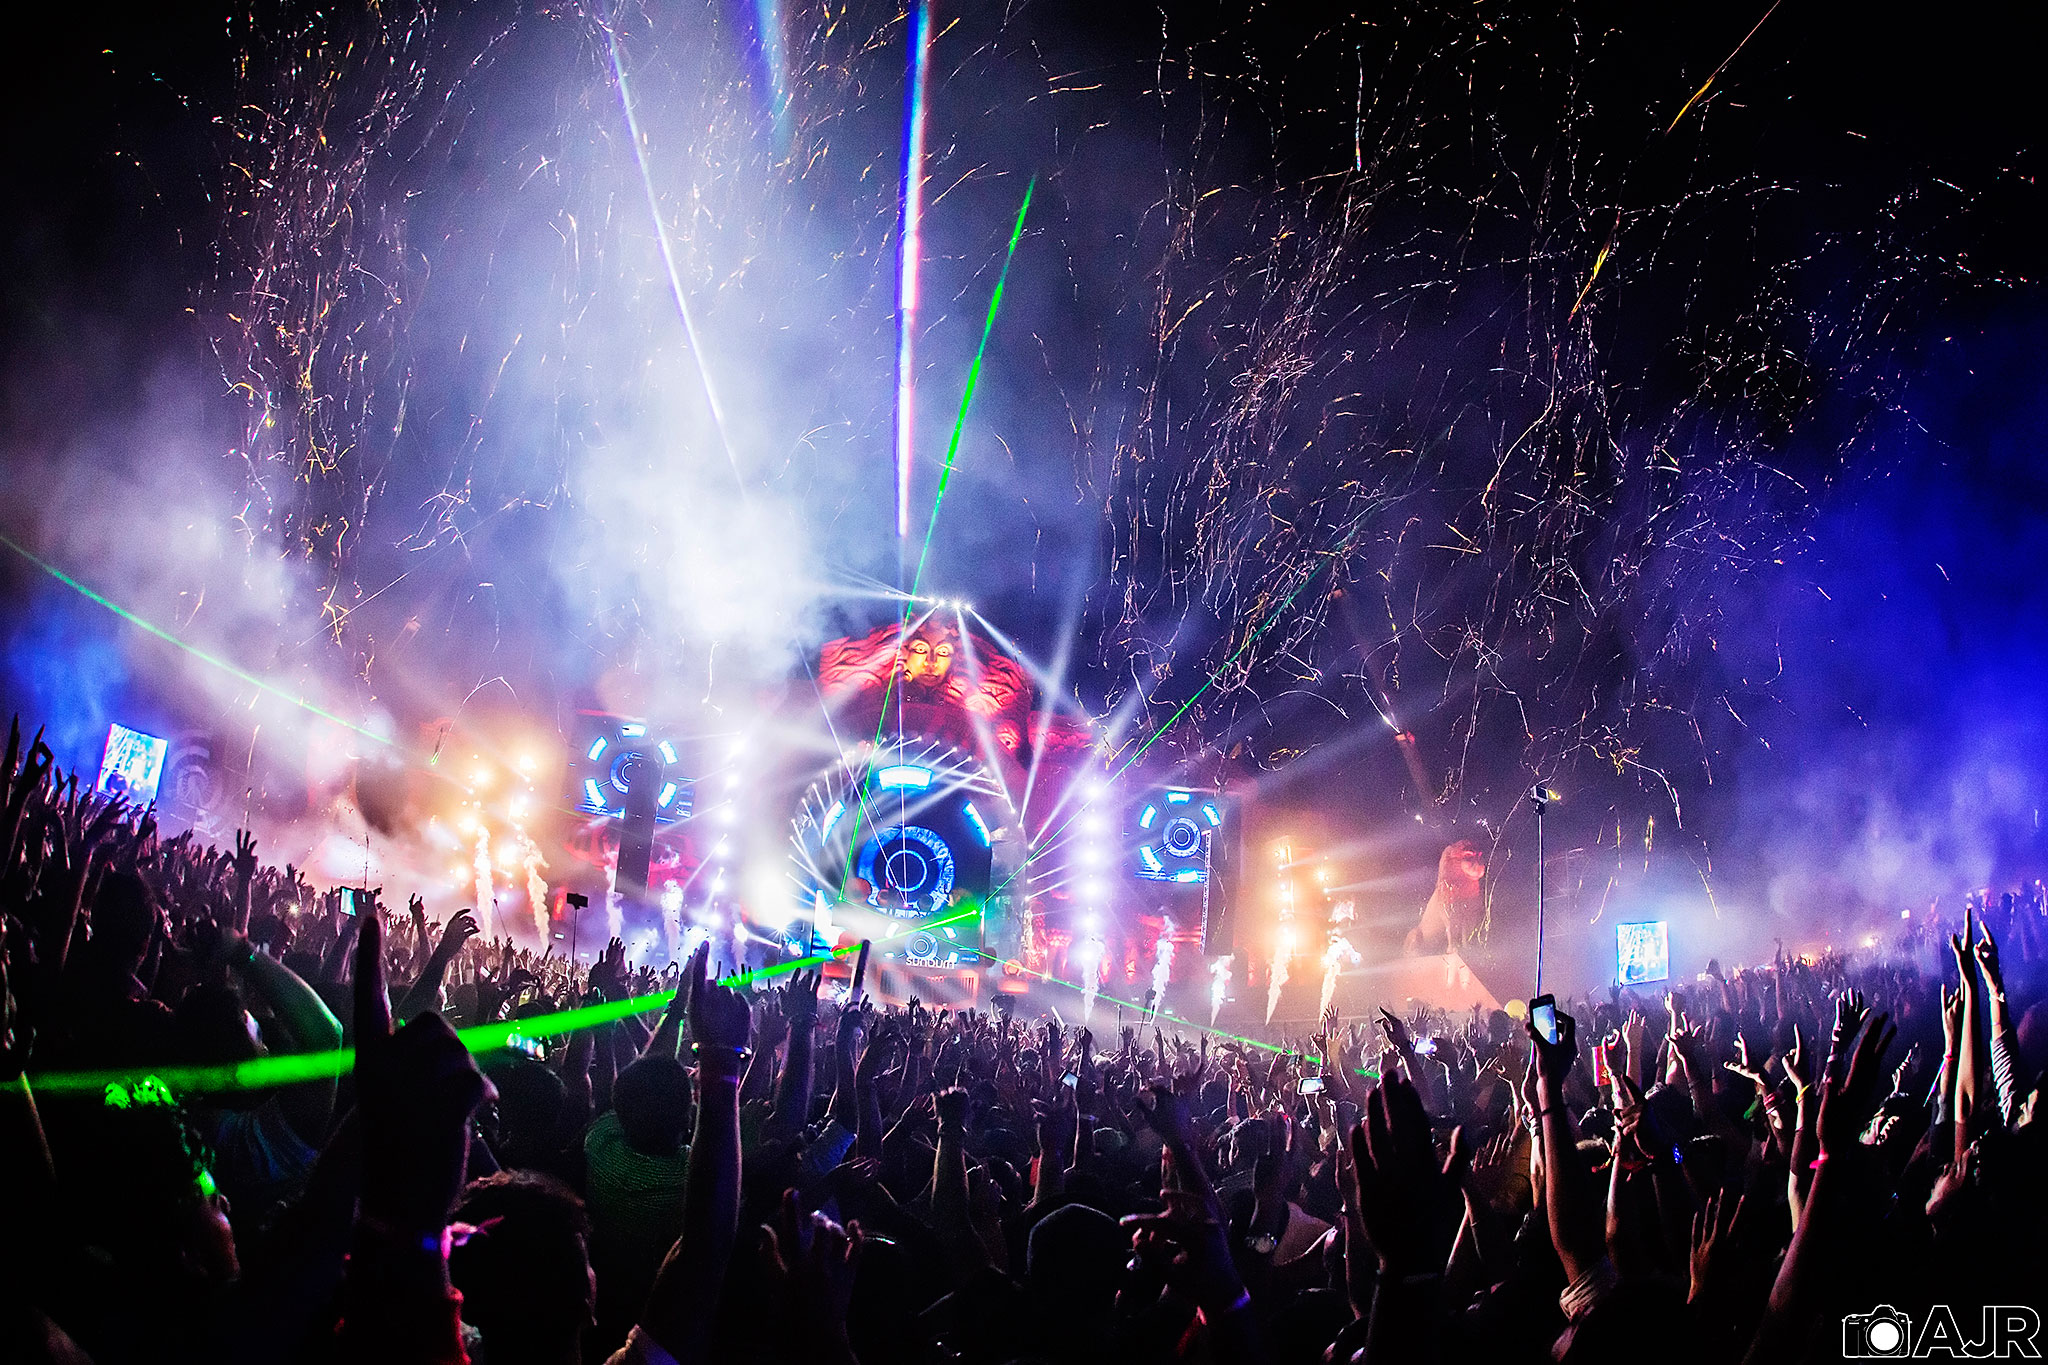 Sunburn Festival in Goa, India, photographed by Andrew Rauner